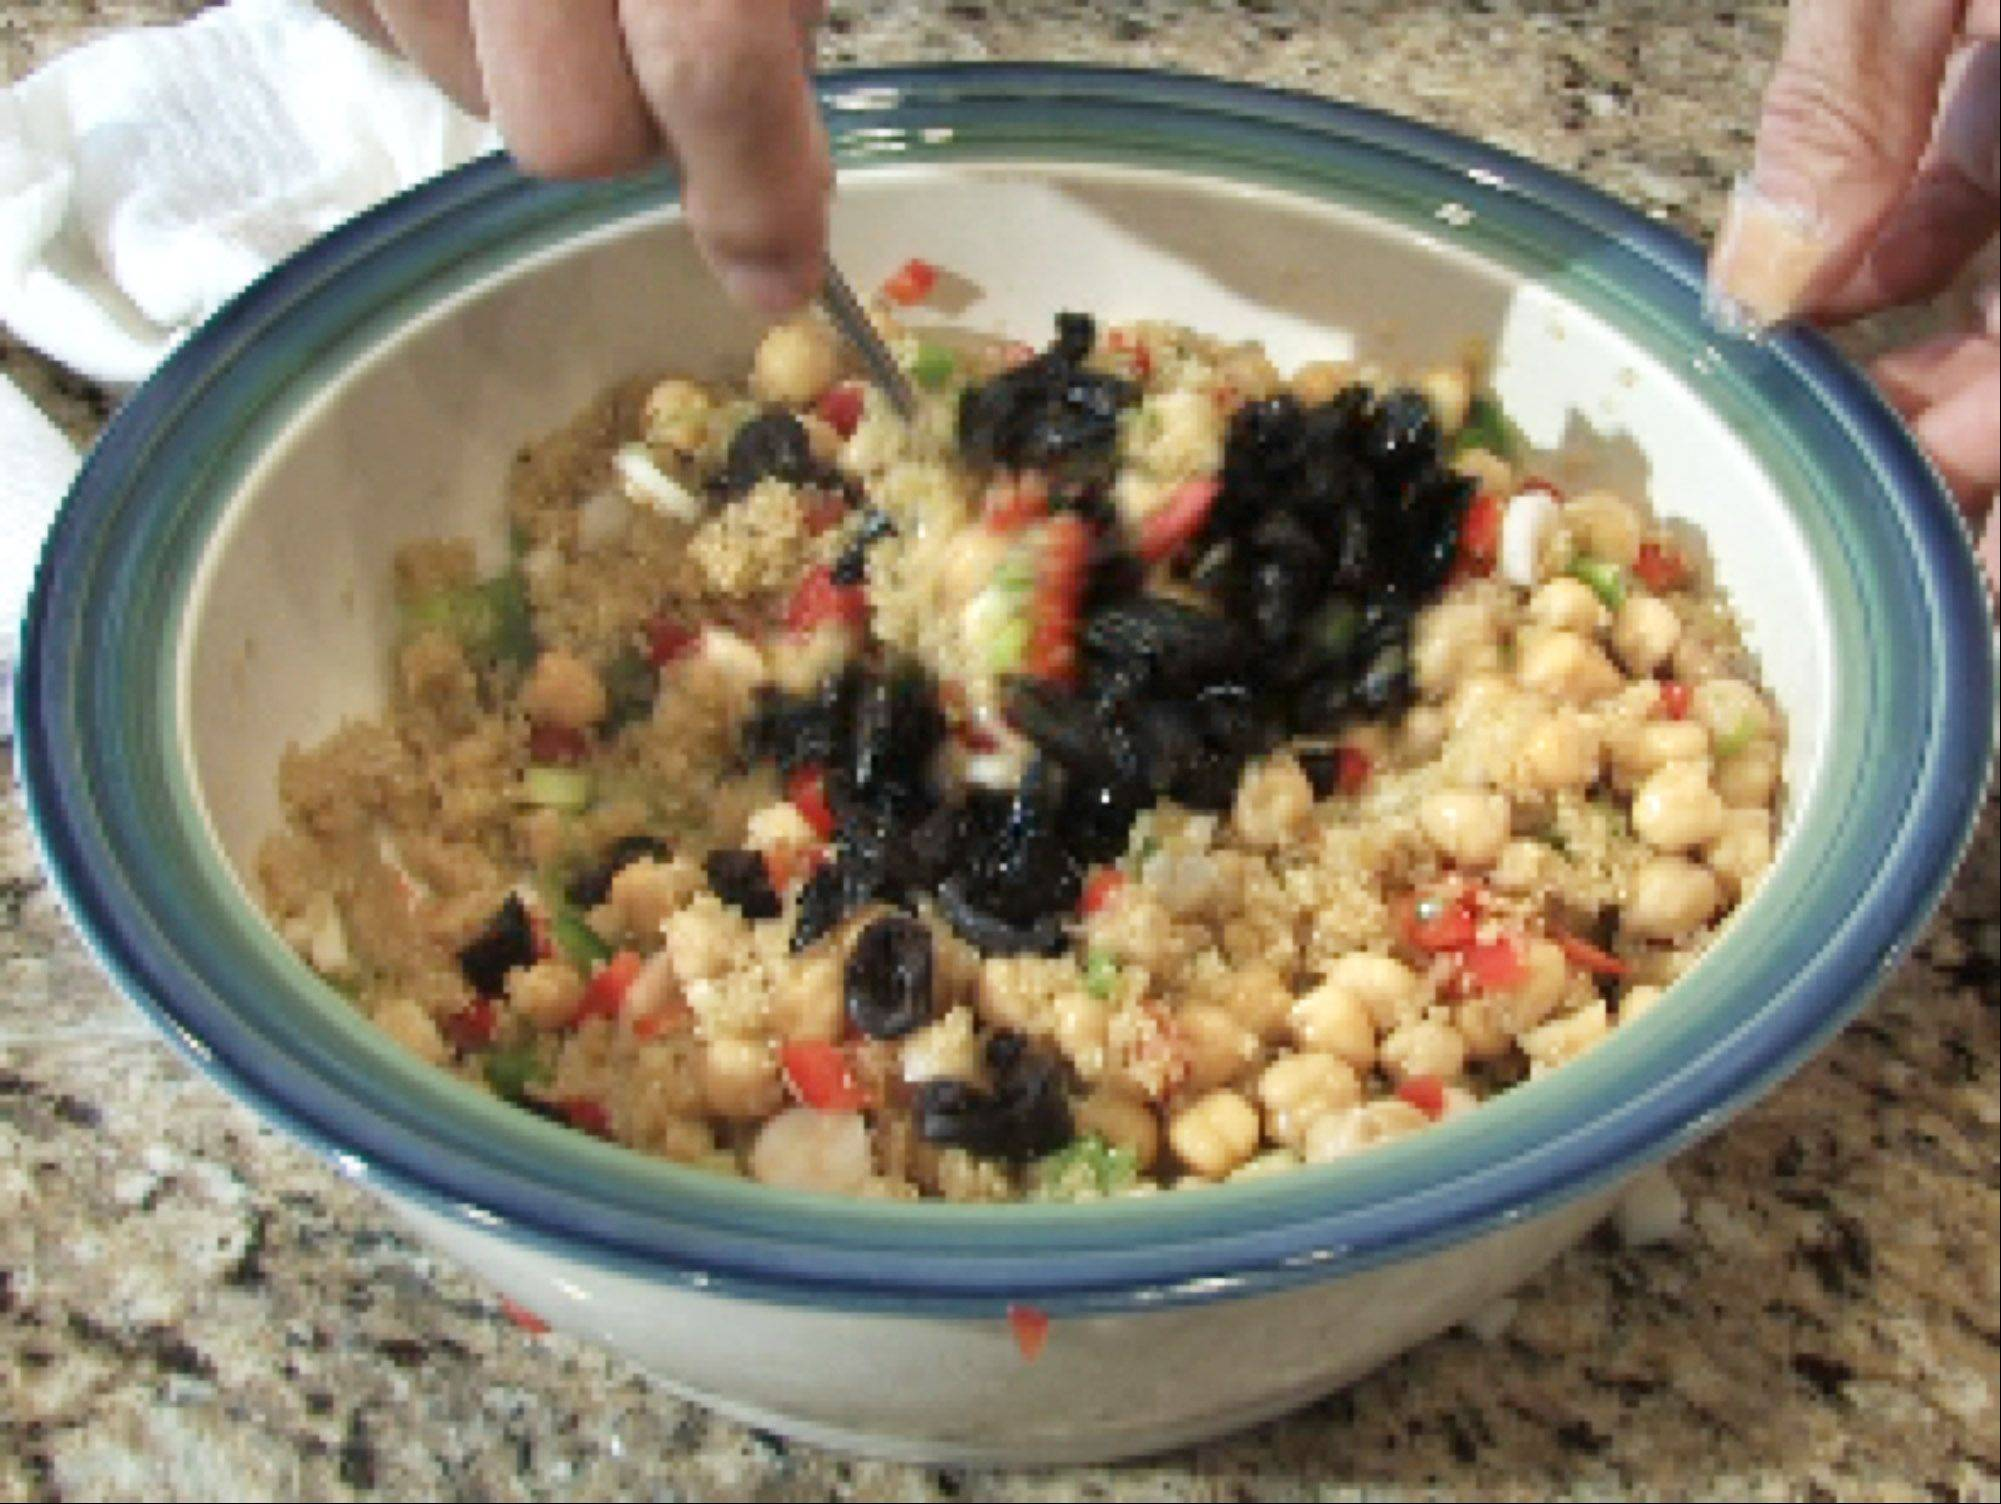 John Starks/jstarks@dailyherald.com Cook of the Week Dan Bressler of South Elgin adds black, oil-cured olives to quinoa salad.